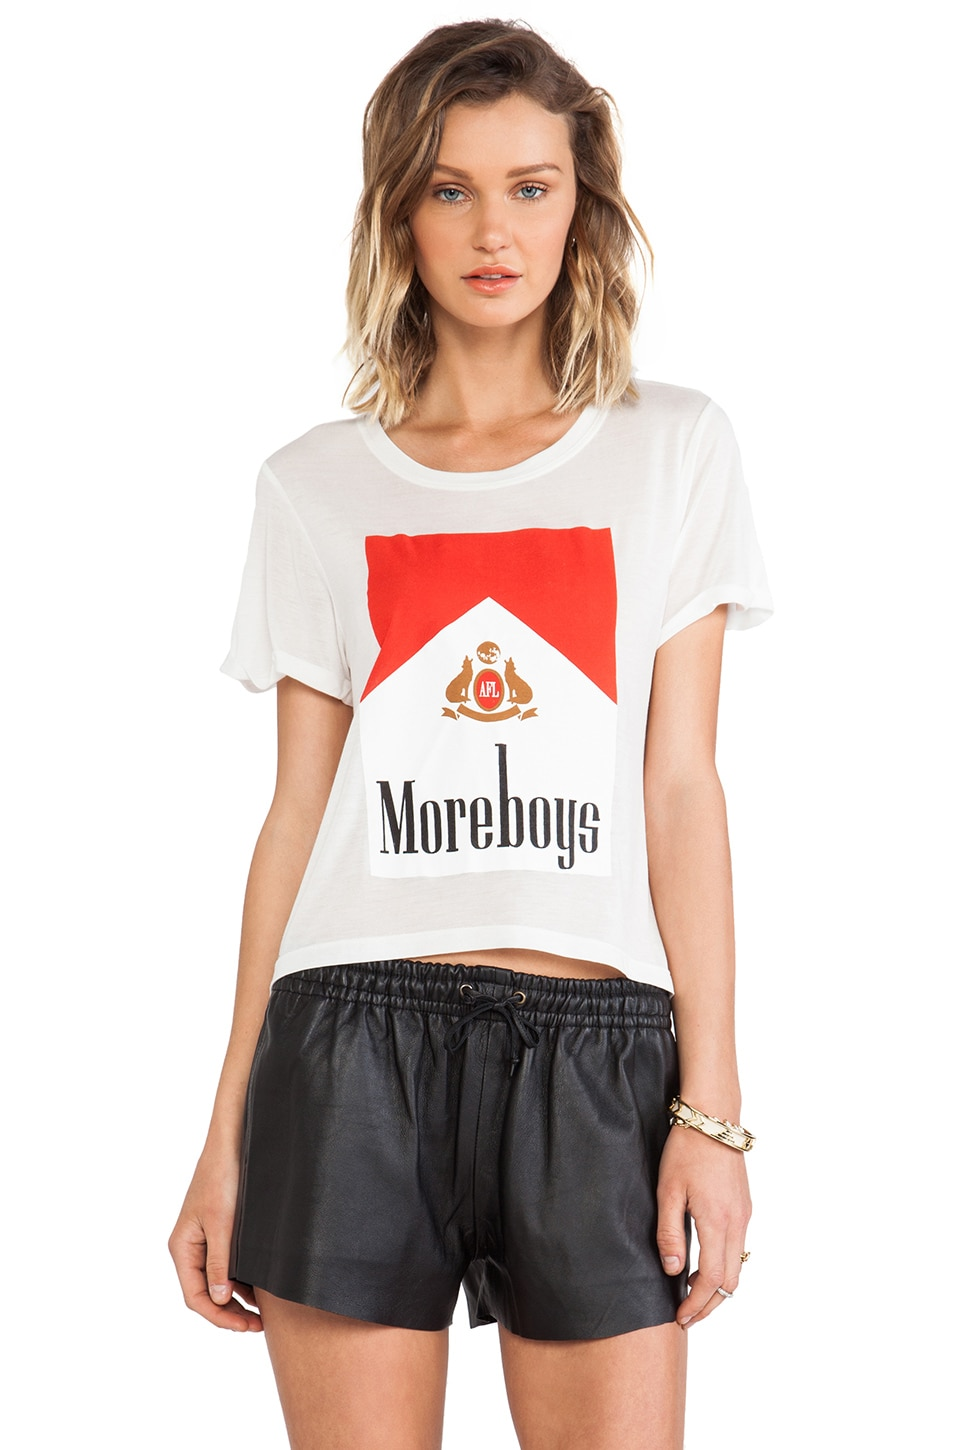 A Fine Line More Boys Crop Tee in White